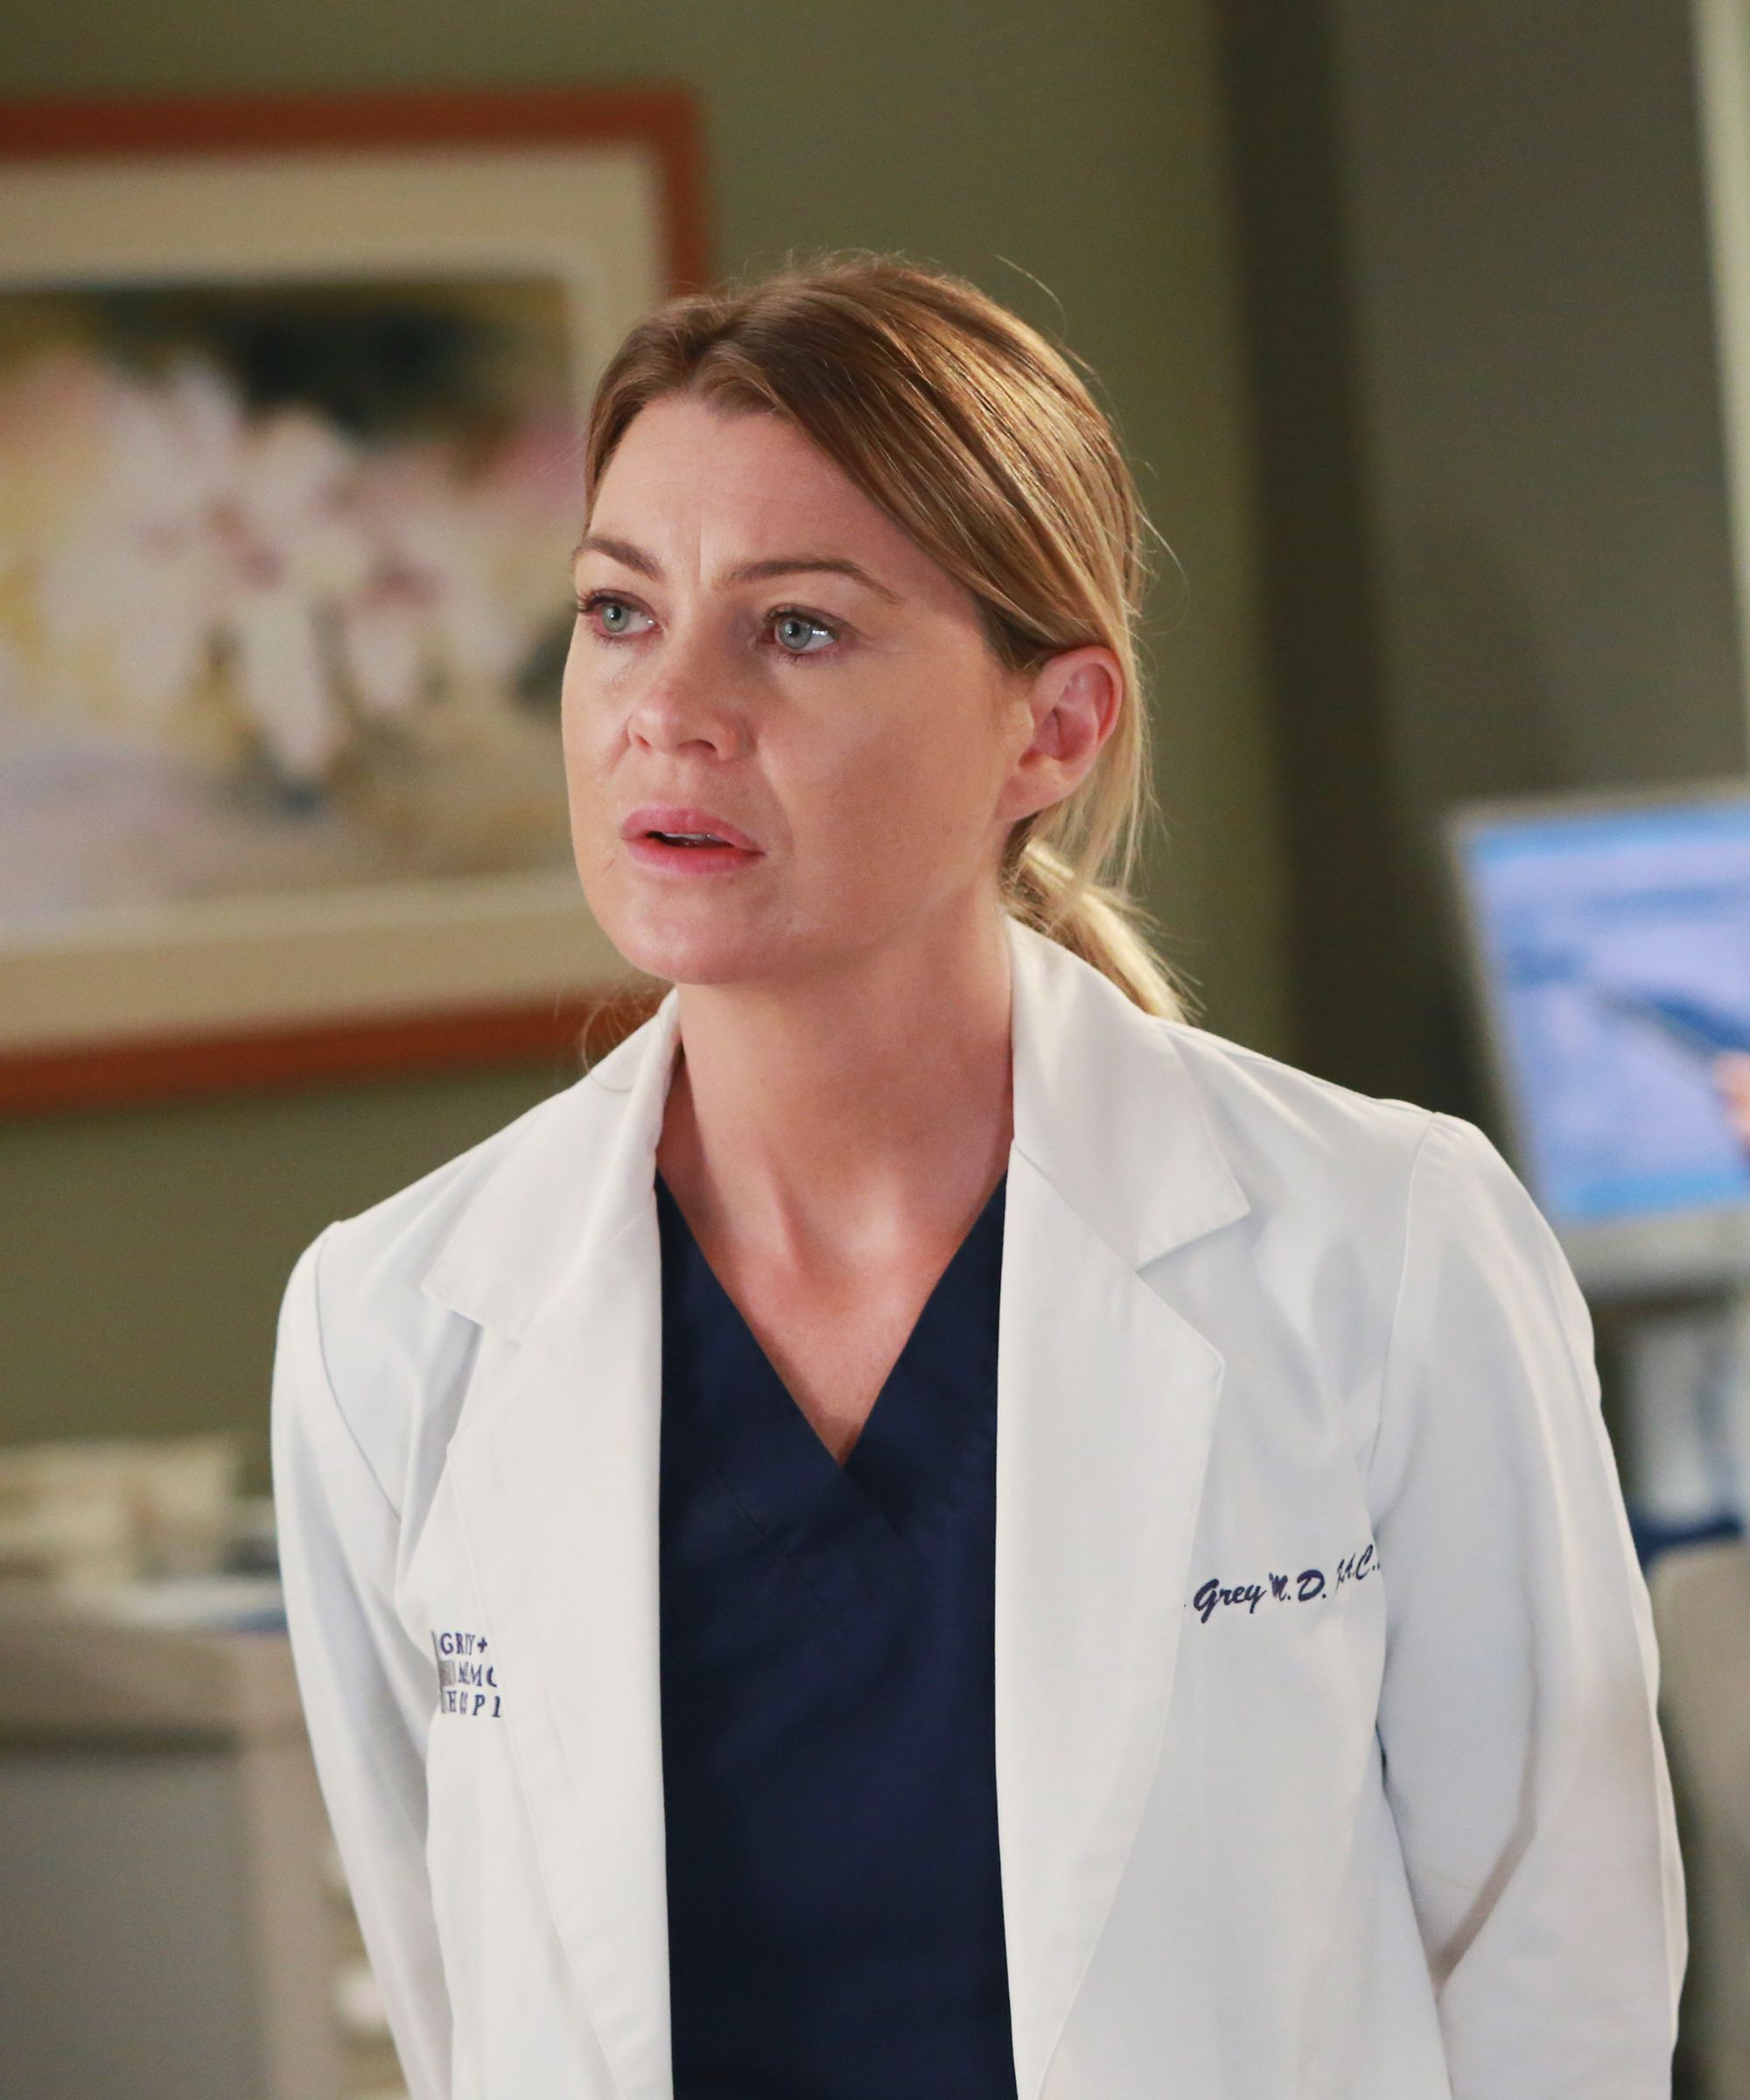 greys anat meredith makes - HD 2000×2400